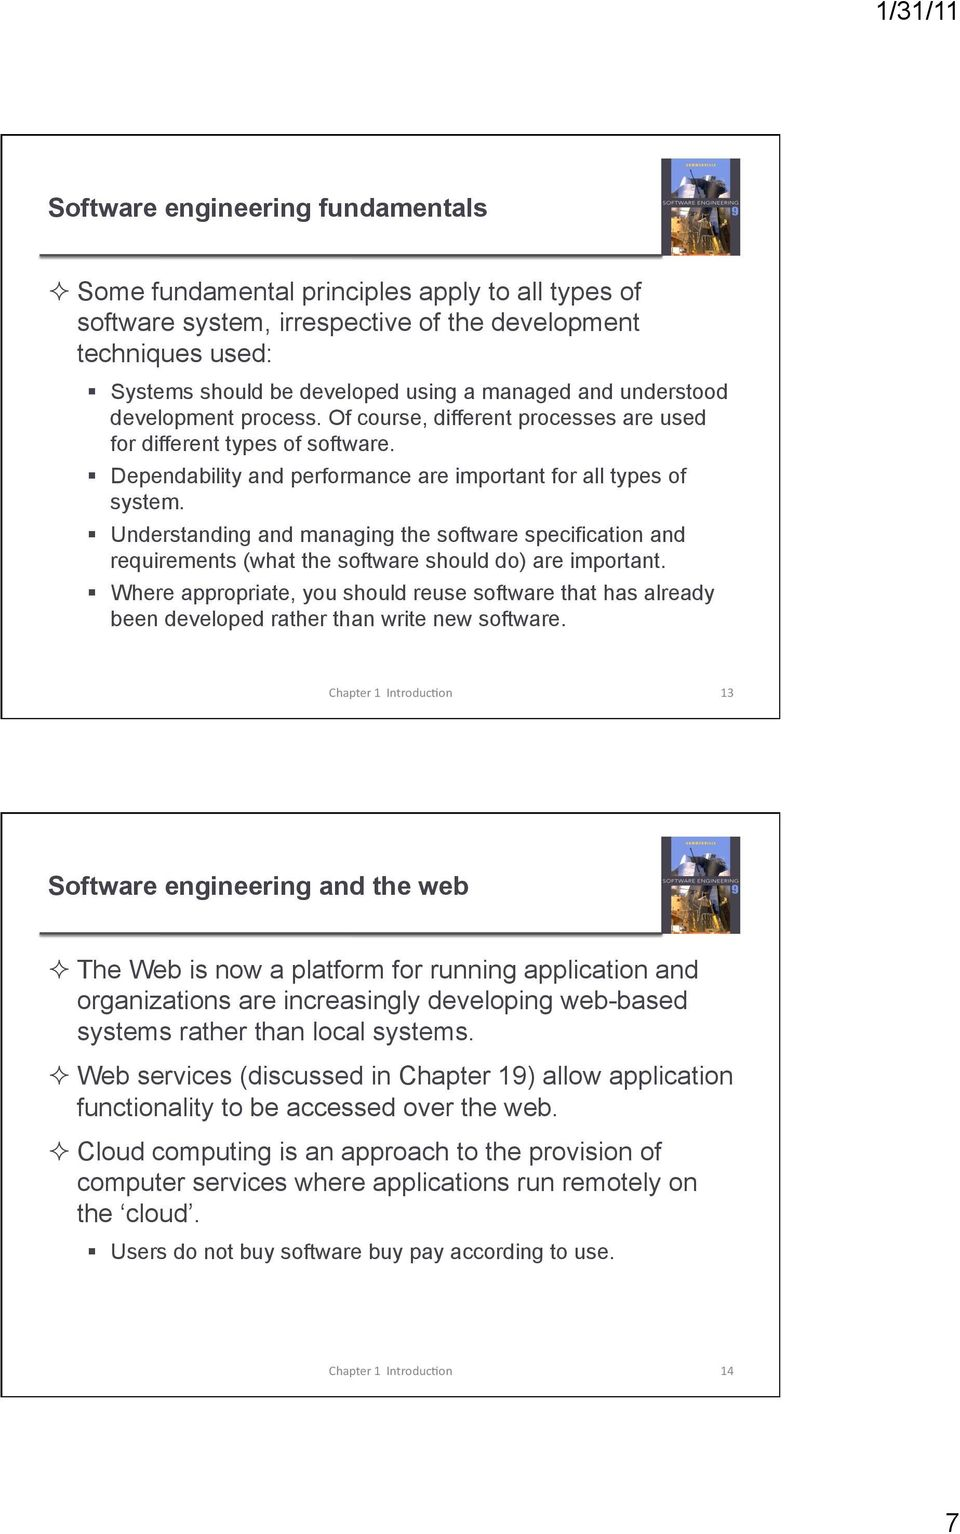 Understanding and managing the software specification and requirements (what the software should do) are important.